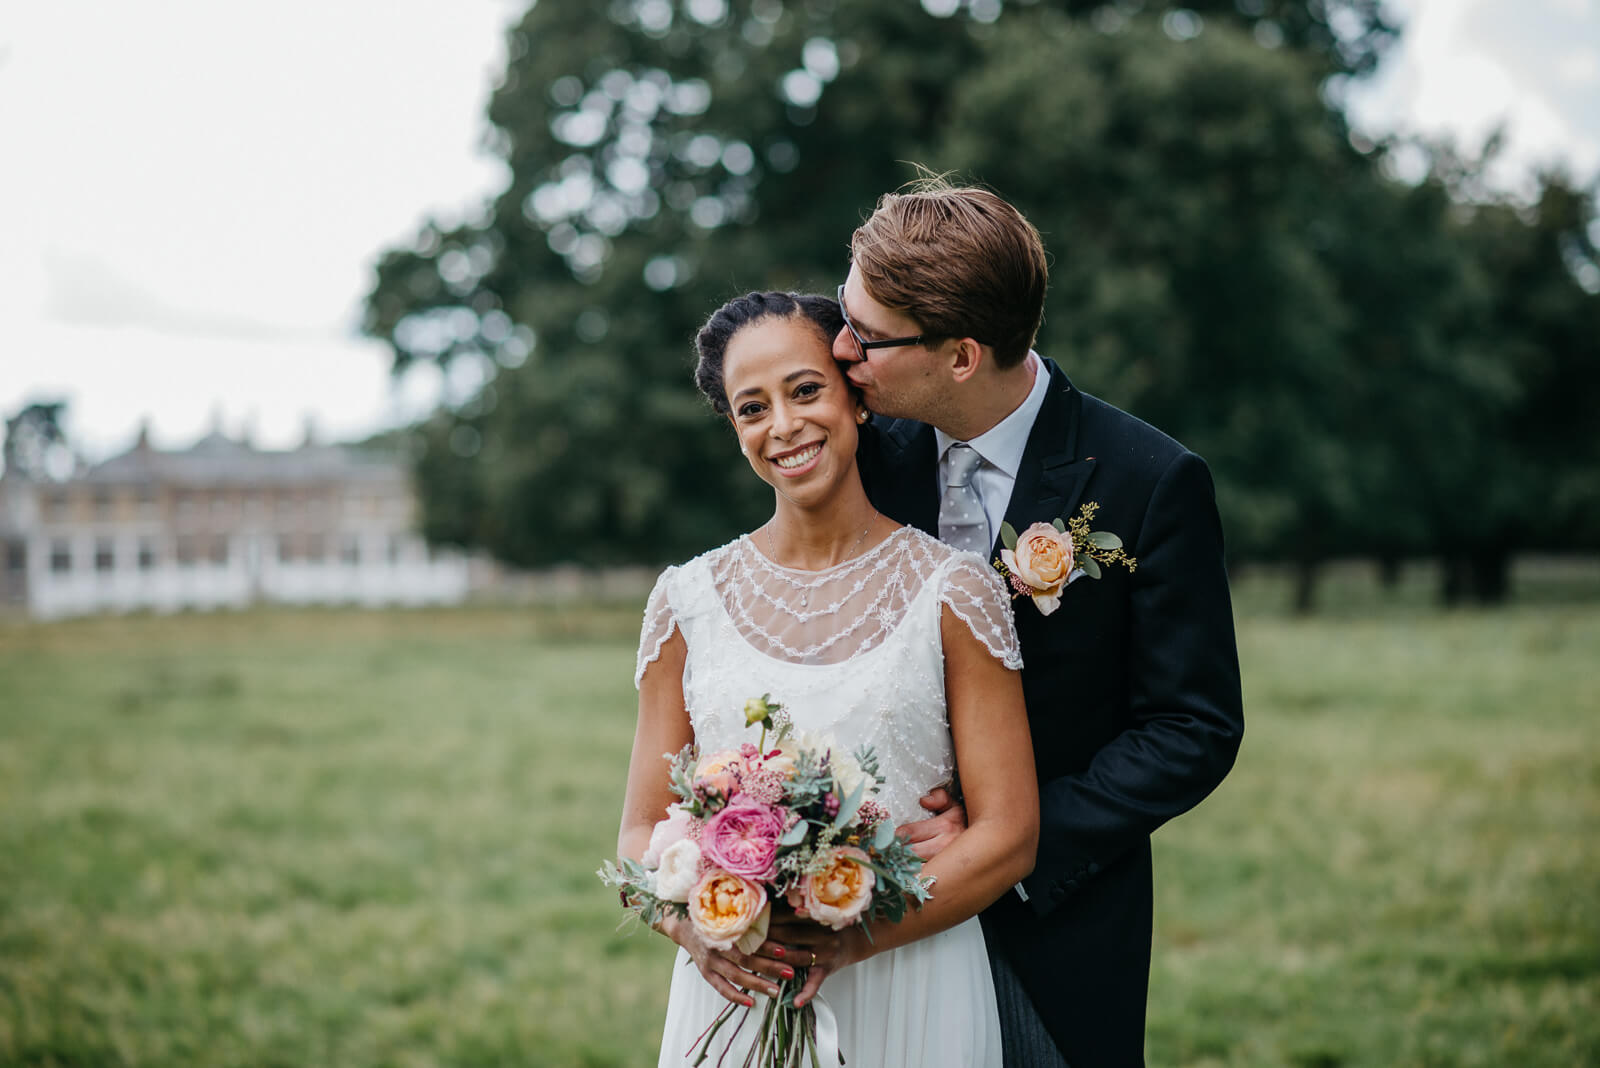 Groom tenderly kisses brides cheek in Bushy Park